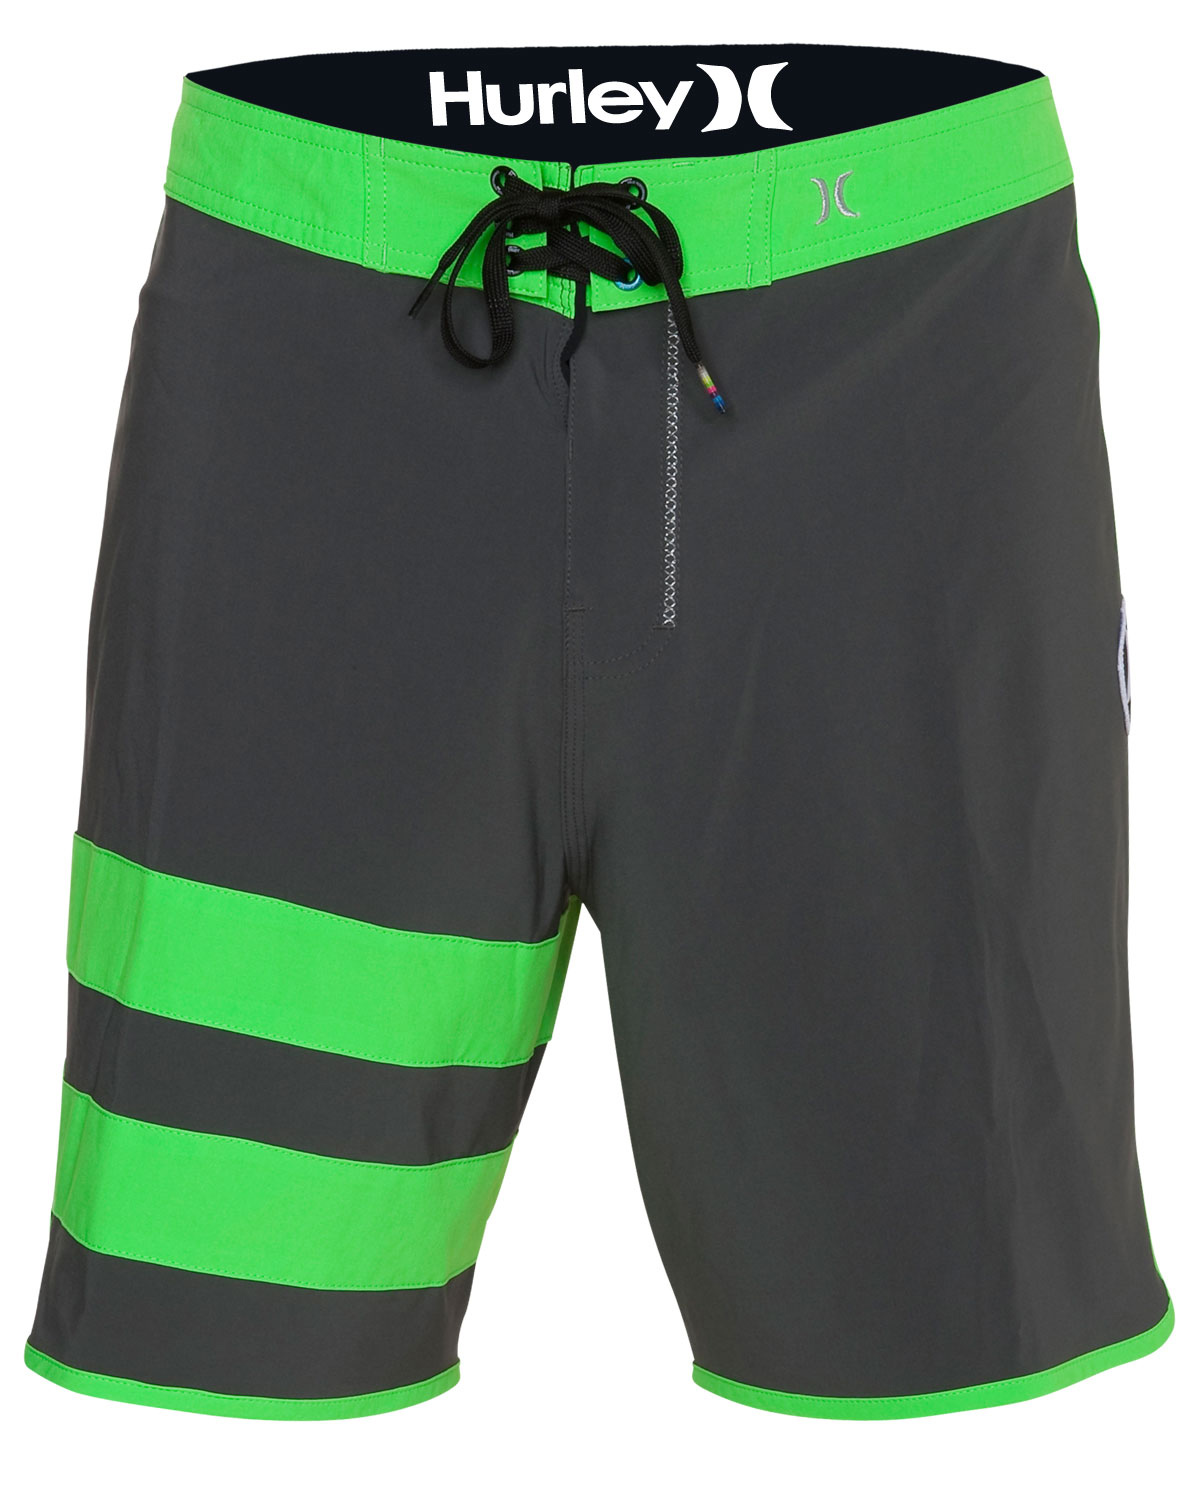 "Surf Key Features of the Hurley Phantom Block Party Solid Boardshorts: 19"" classic fit Recycled phantom 60% stretch Patented EZ fly closure Signature foil branding Metallic embroidery Performance water repellency No outseam Patch pocket with Velcro flap - $41.95"